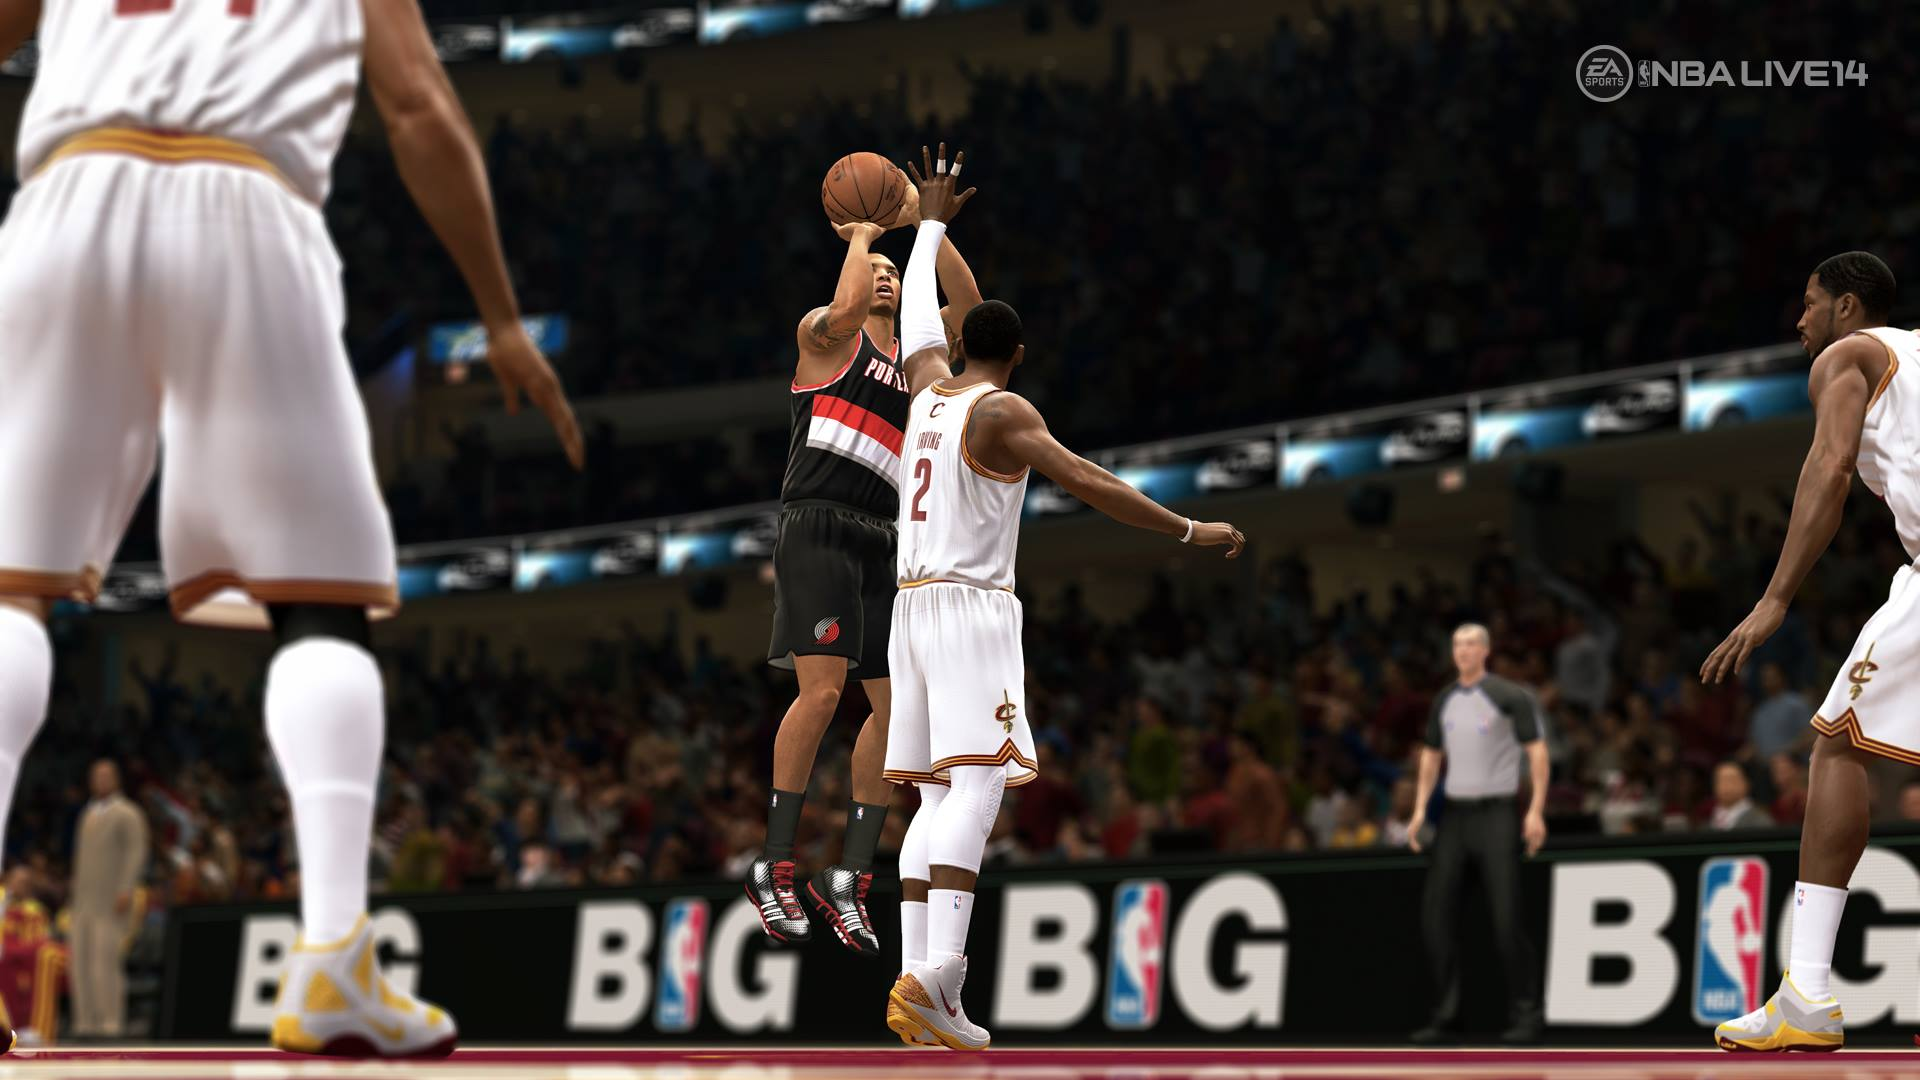 nba-live-14 in game